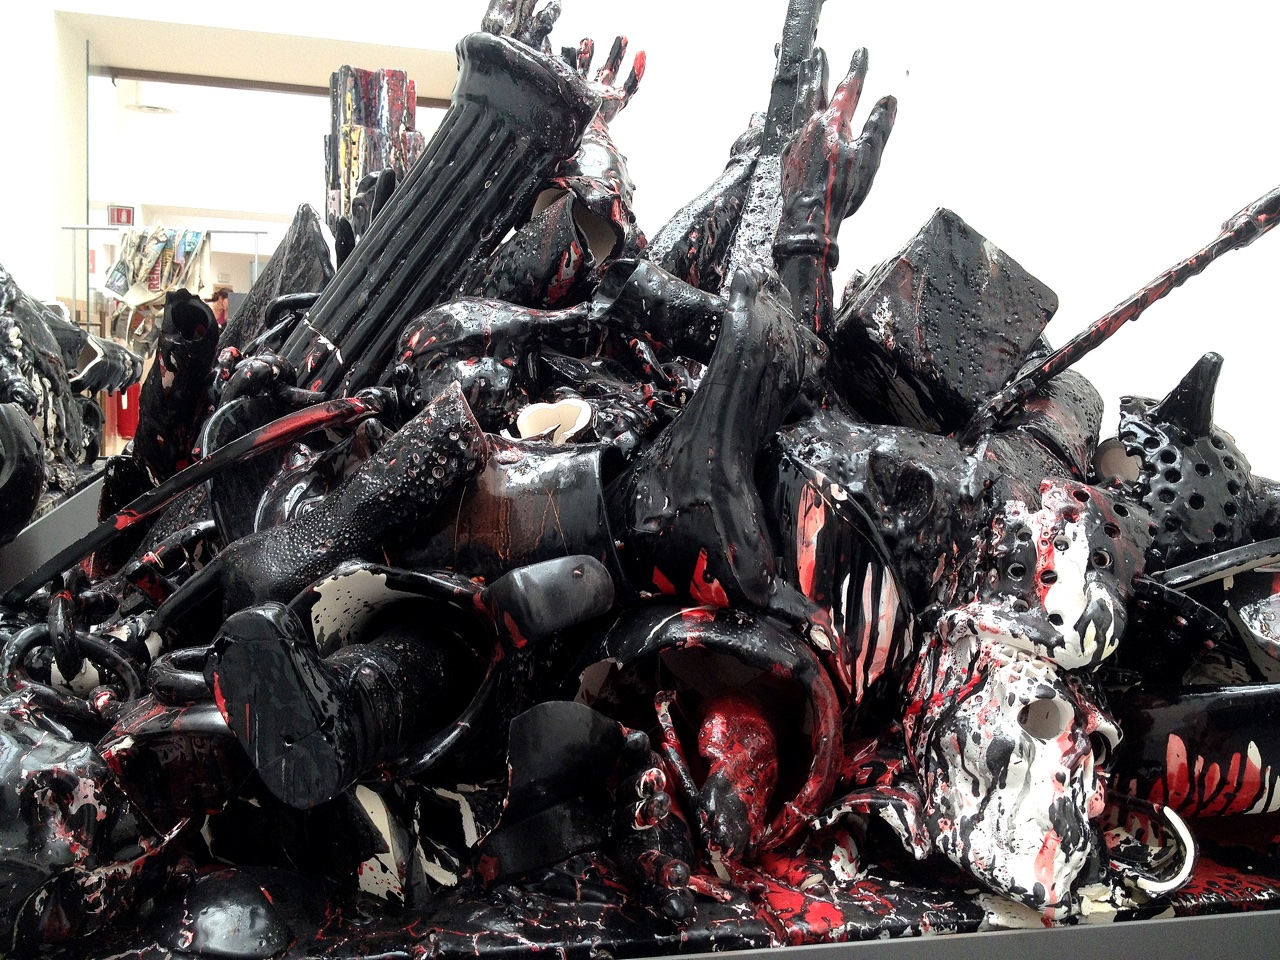 A sculpture made of a huge pile of different objects painted in black and red.